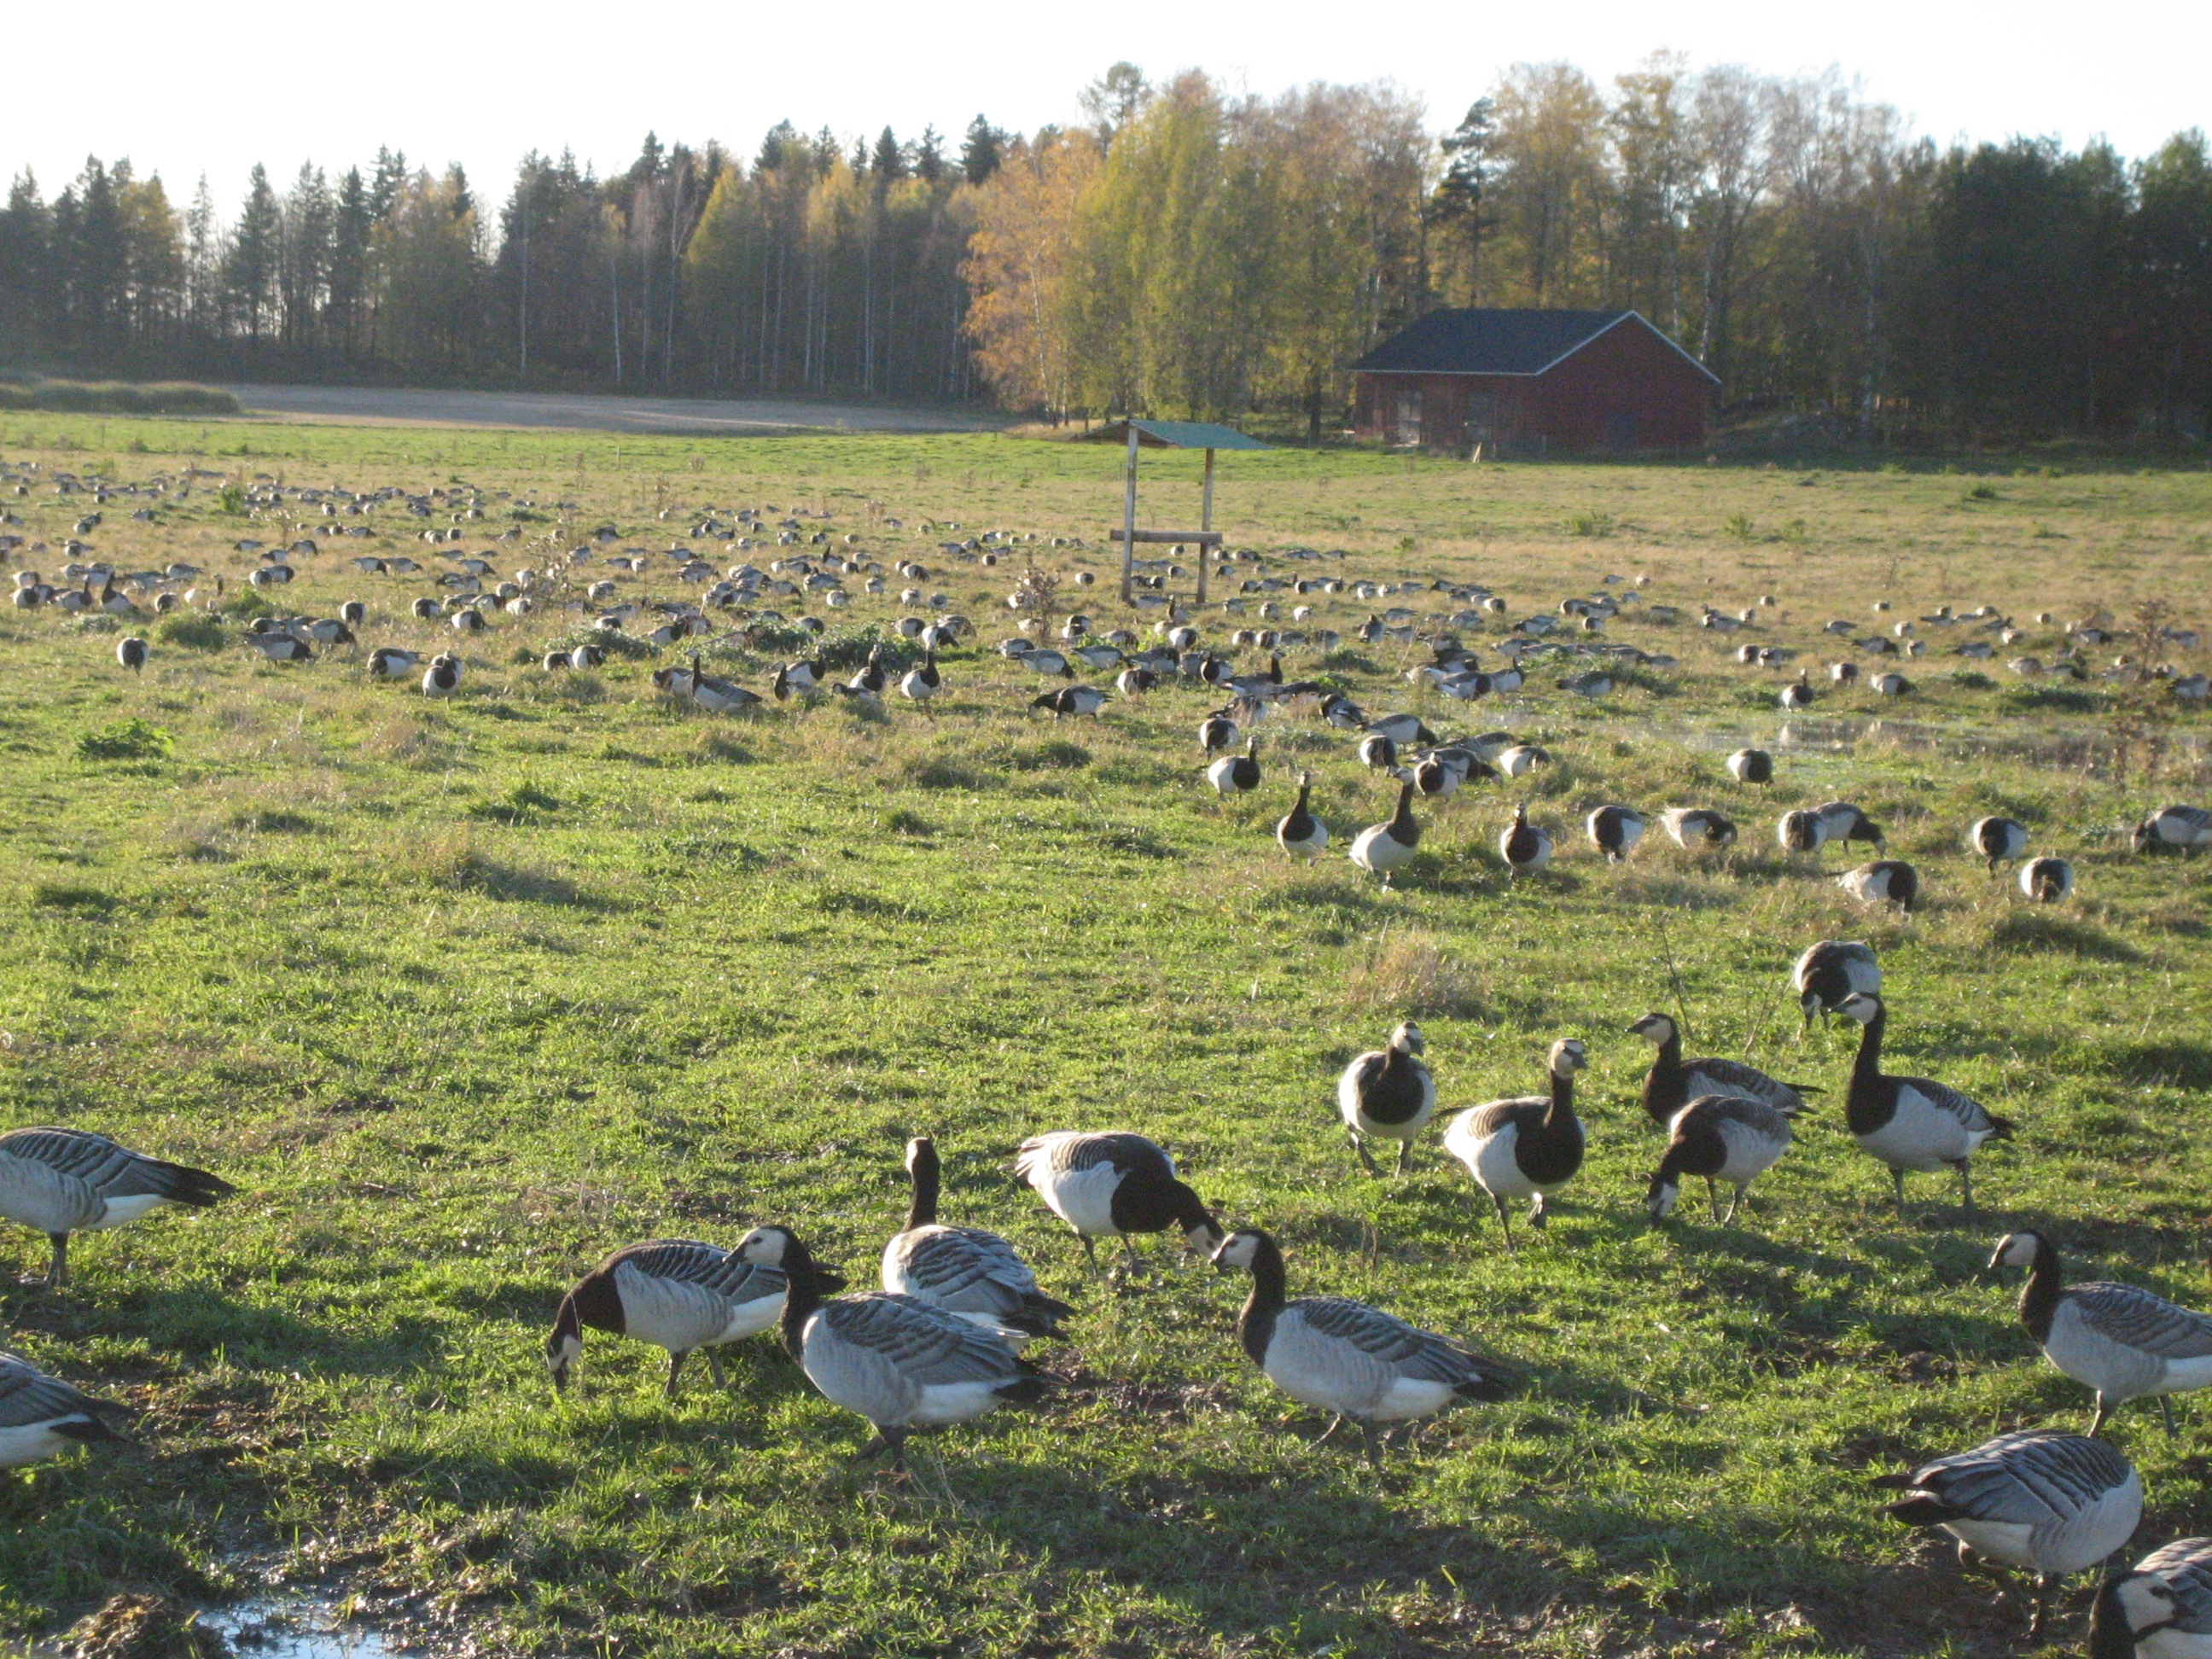 Canada Goose toronto outlet 2016 - Barnacle goose - Wikipedia, the free encyclopedia